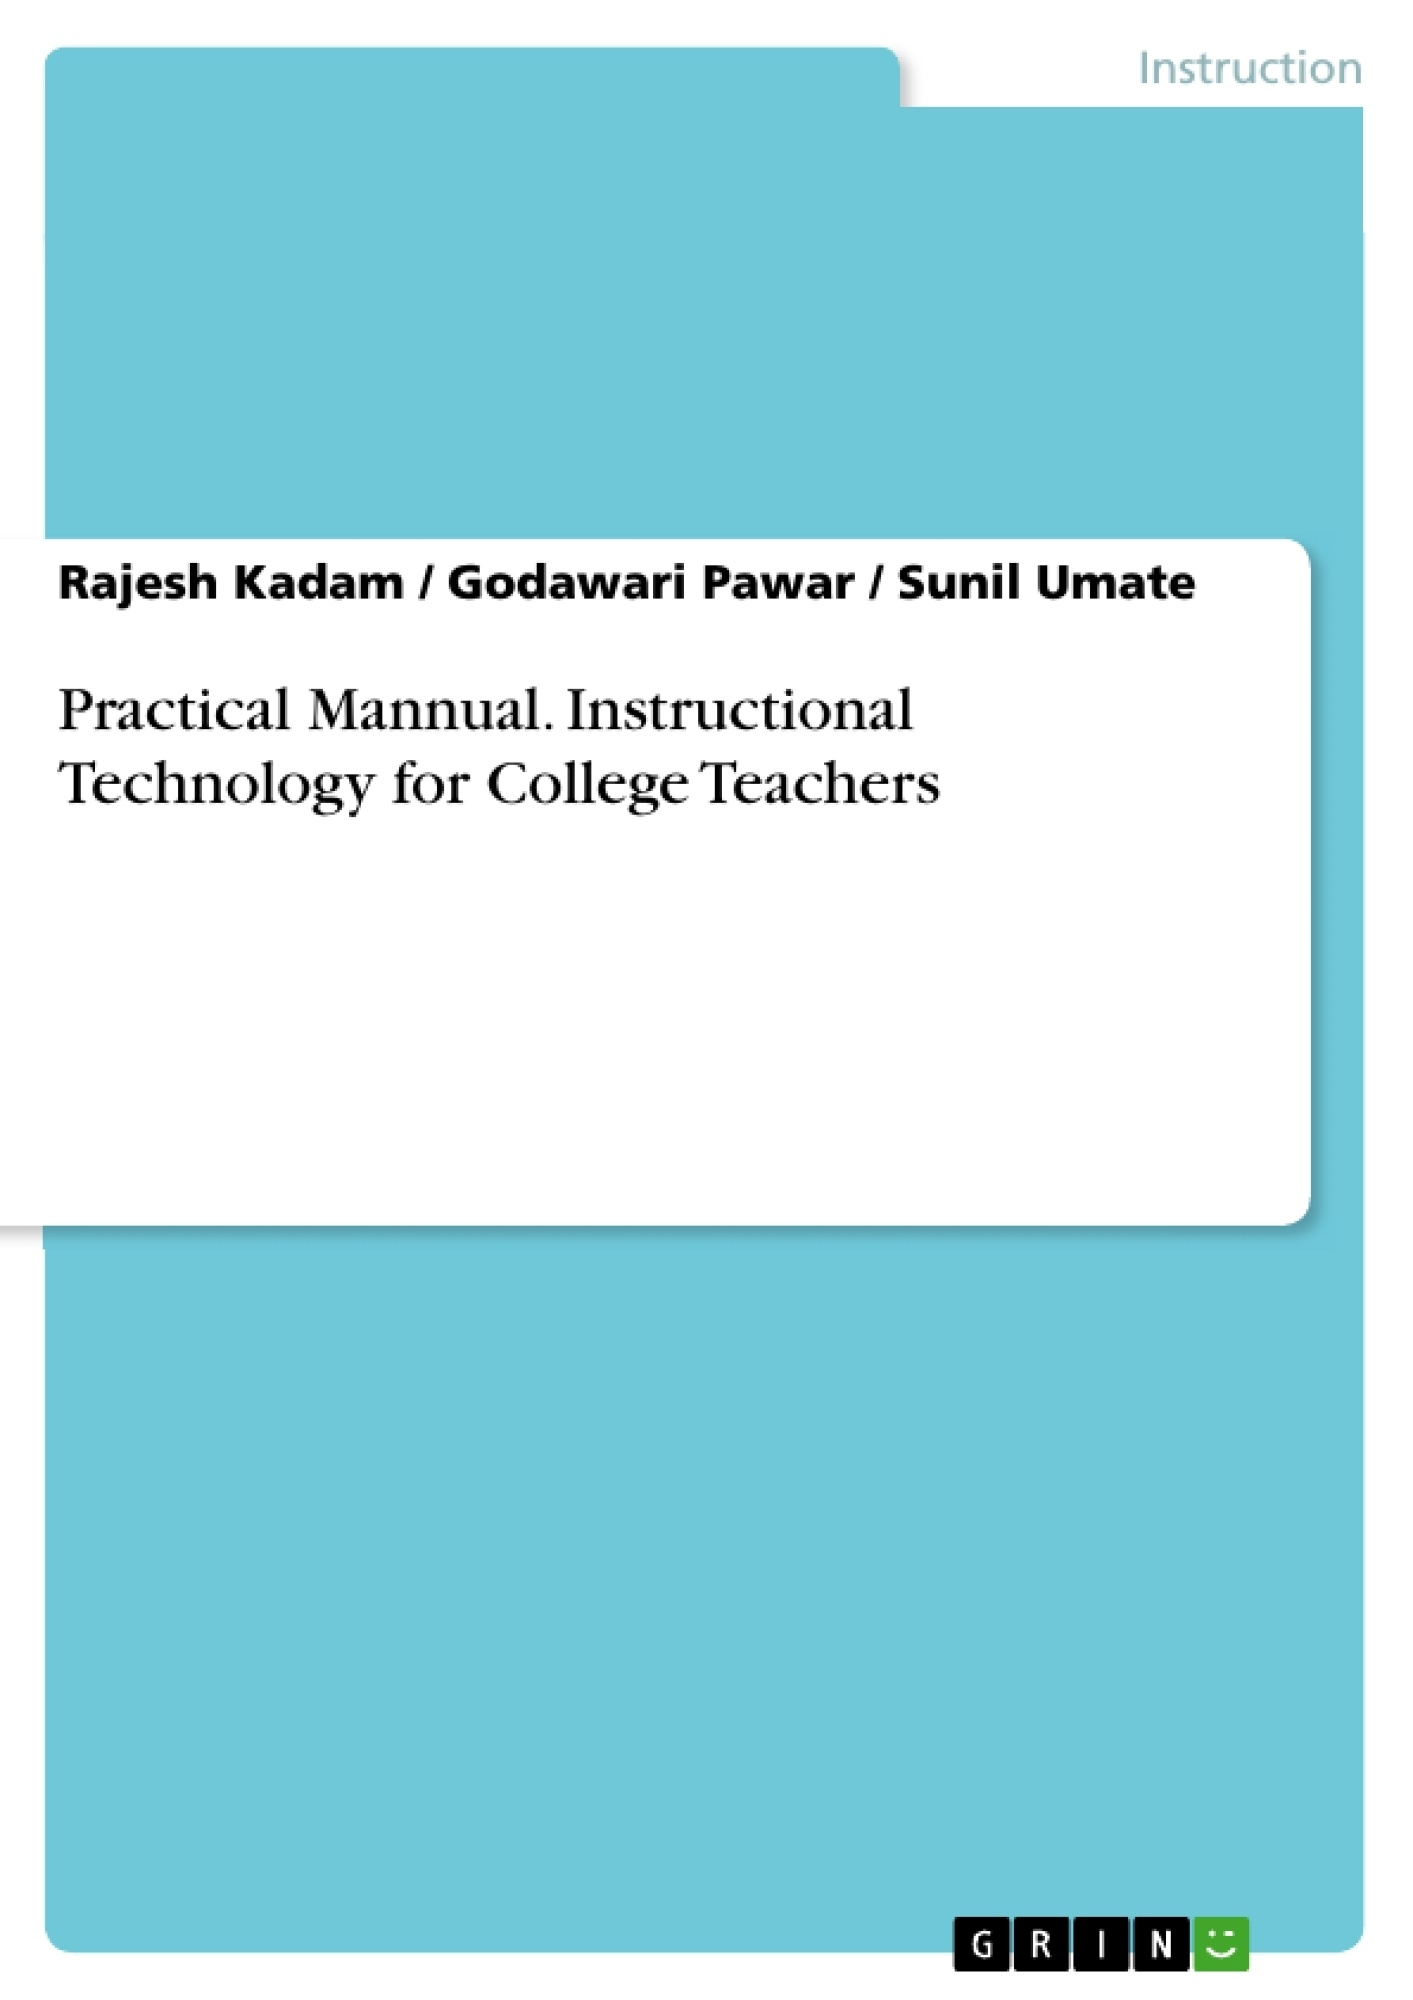 Title: Practical Mannual. Instructional Technology for College Teachers